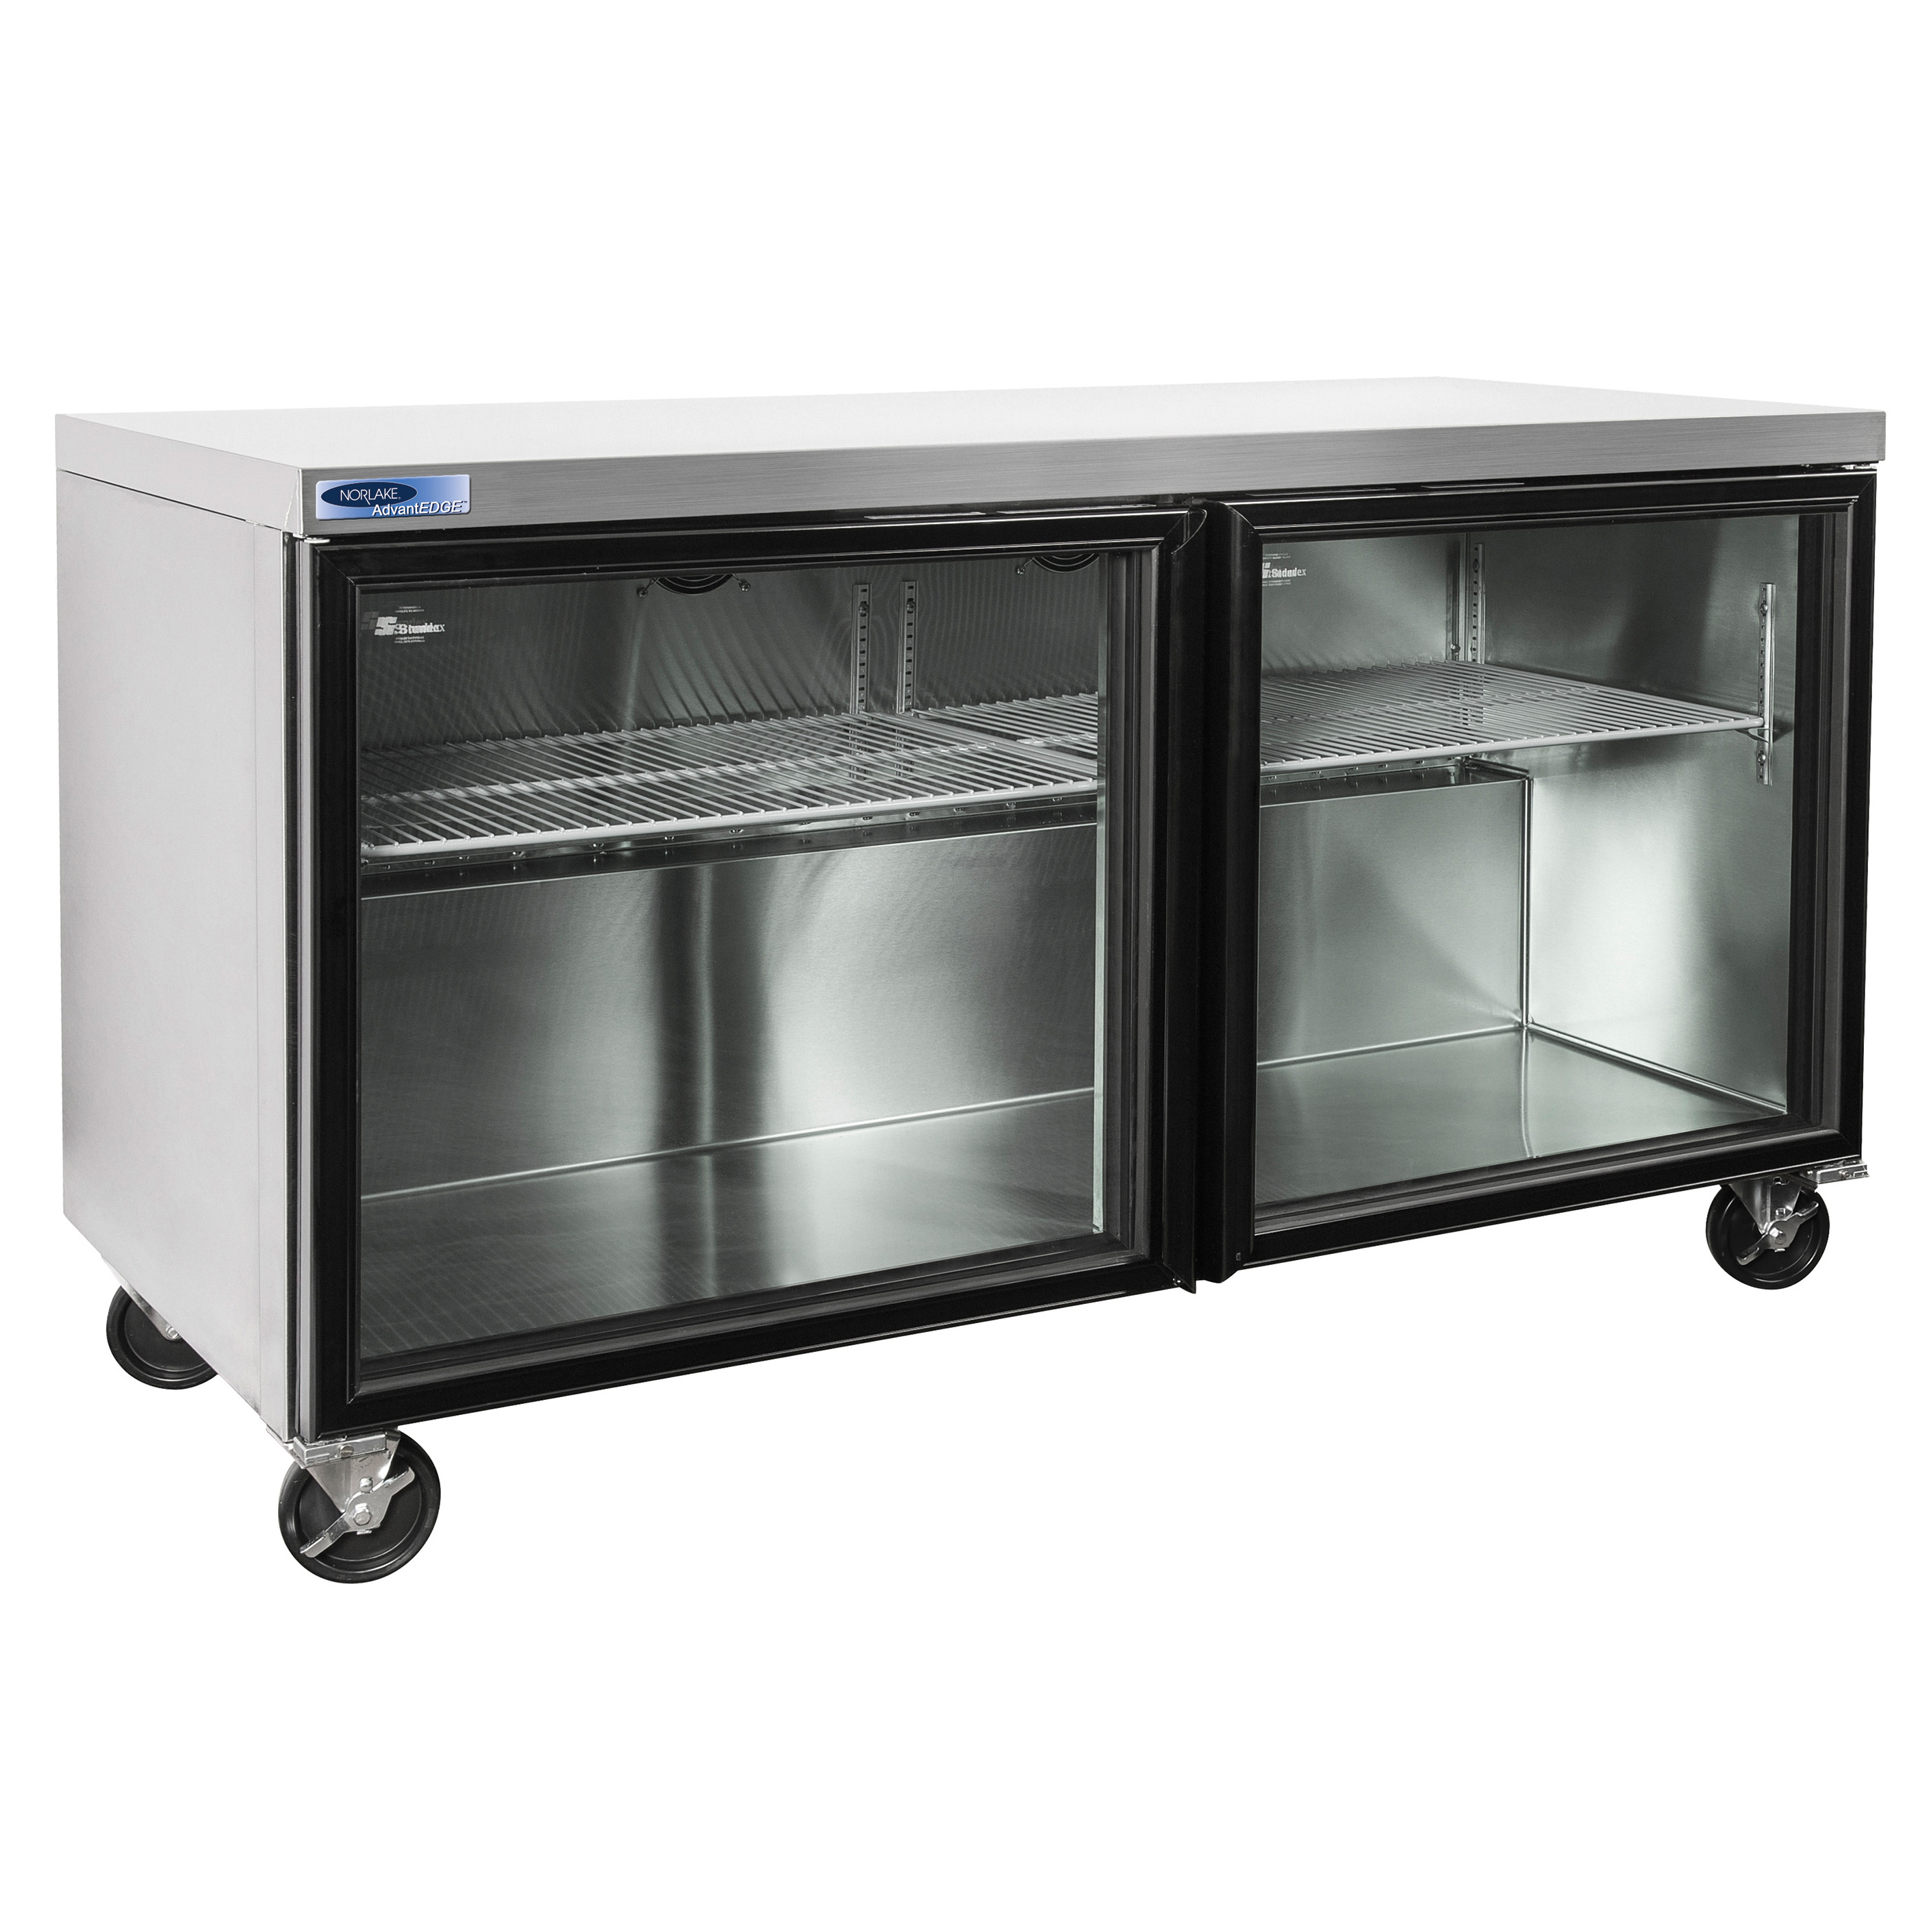 Nor-Lake NLURG60A-013 refrigerator, undercounter, reach-in